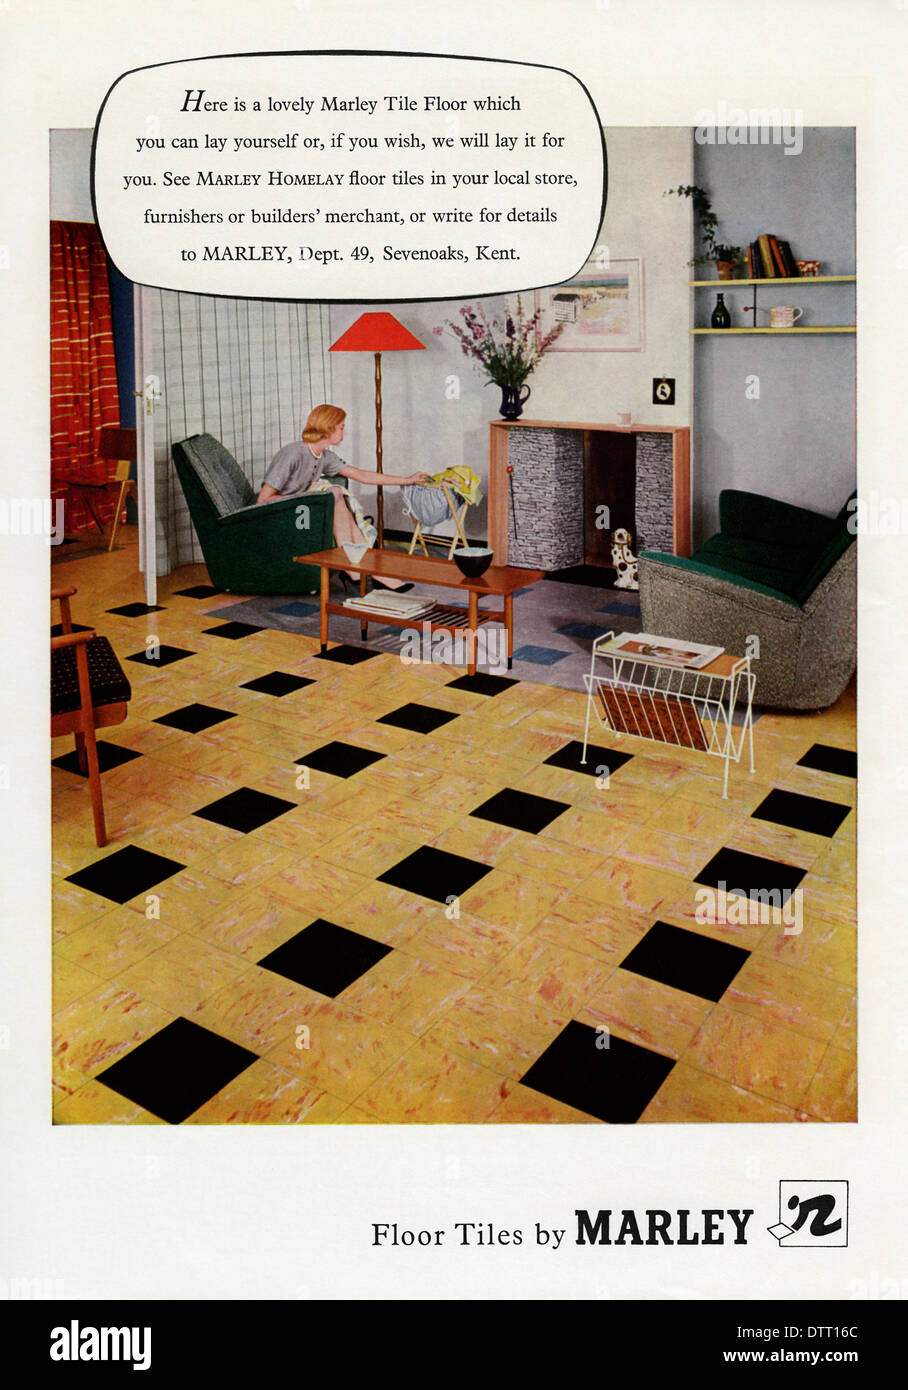 Old advert for marley floor tiles these were hard wearing old advert for marley floor tiles these were hard wearing laminated tiles the advert appeared in a magazine in 1956 dailygadgetfo Gallery